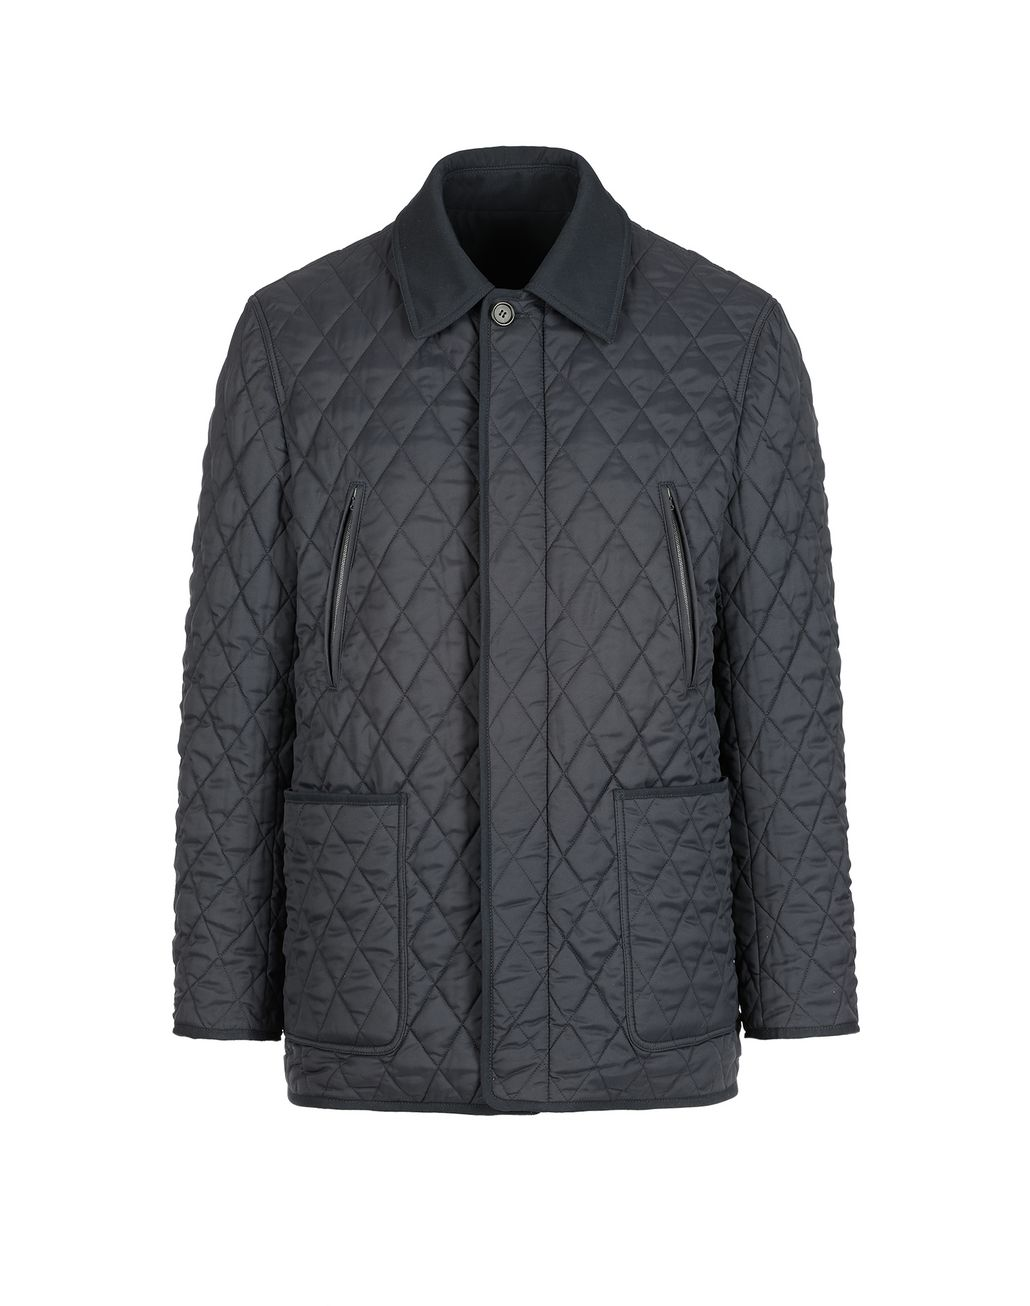 BRIONI Navy Blue Quilted Reversible Field Jacket Coats & Raincoats Man f